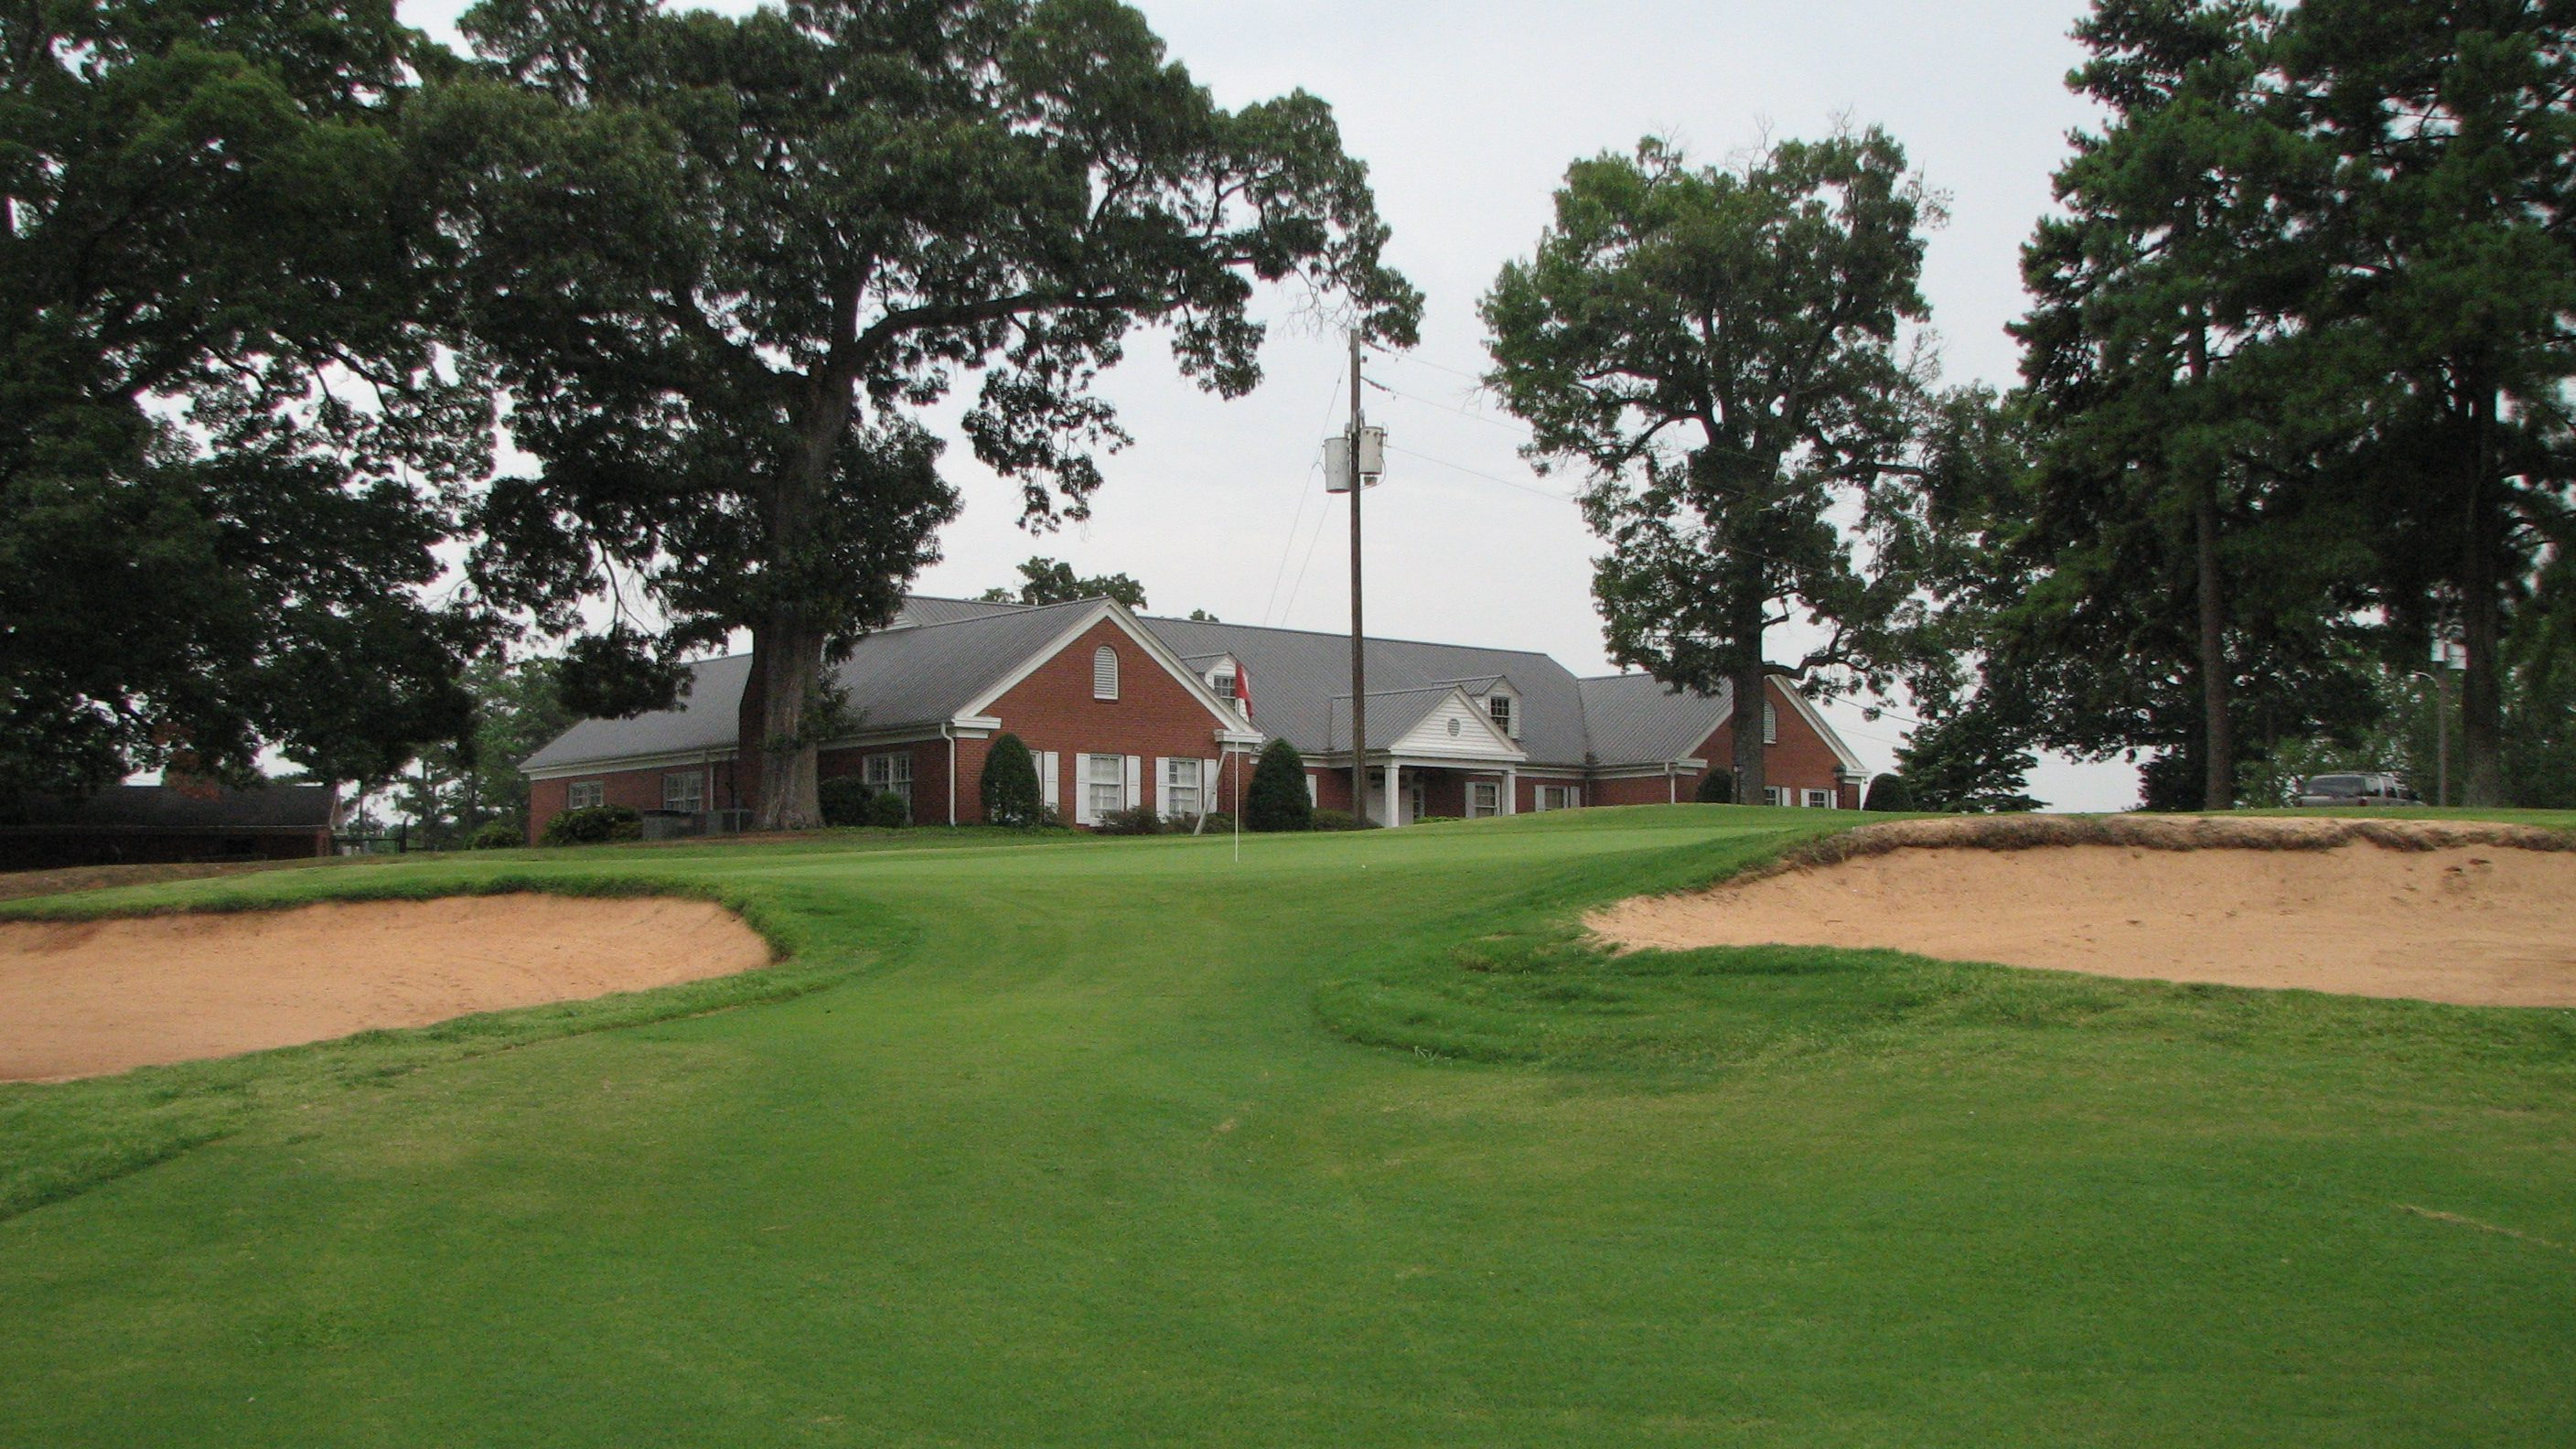 green with clubhouse in the background